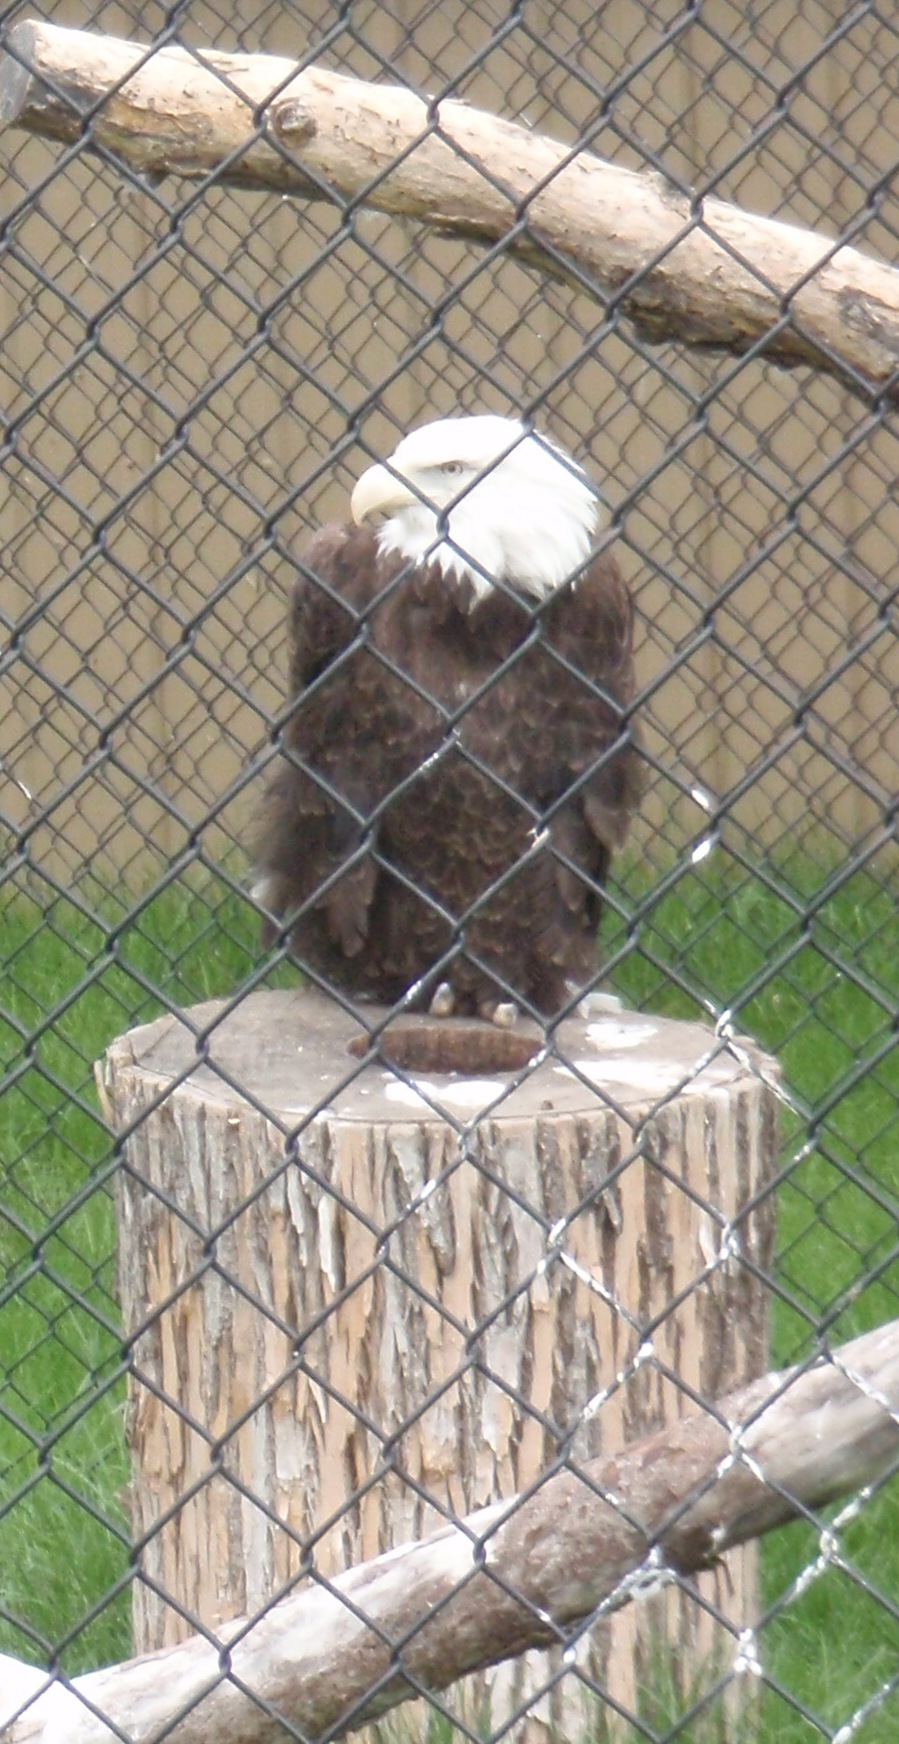 Bald eagle at Minot zoo who isn't at risk of getting chopped up by a wind turbine. Photo by James Ulvog.